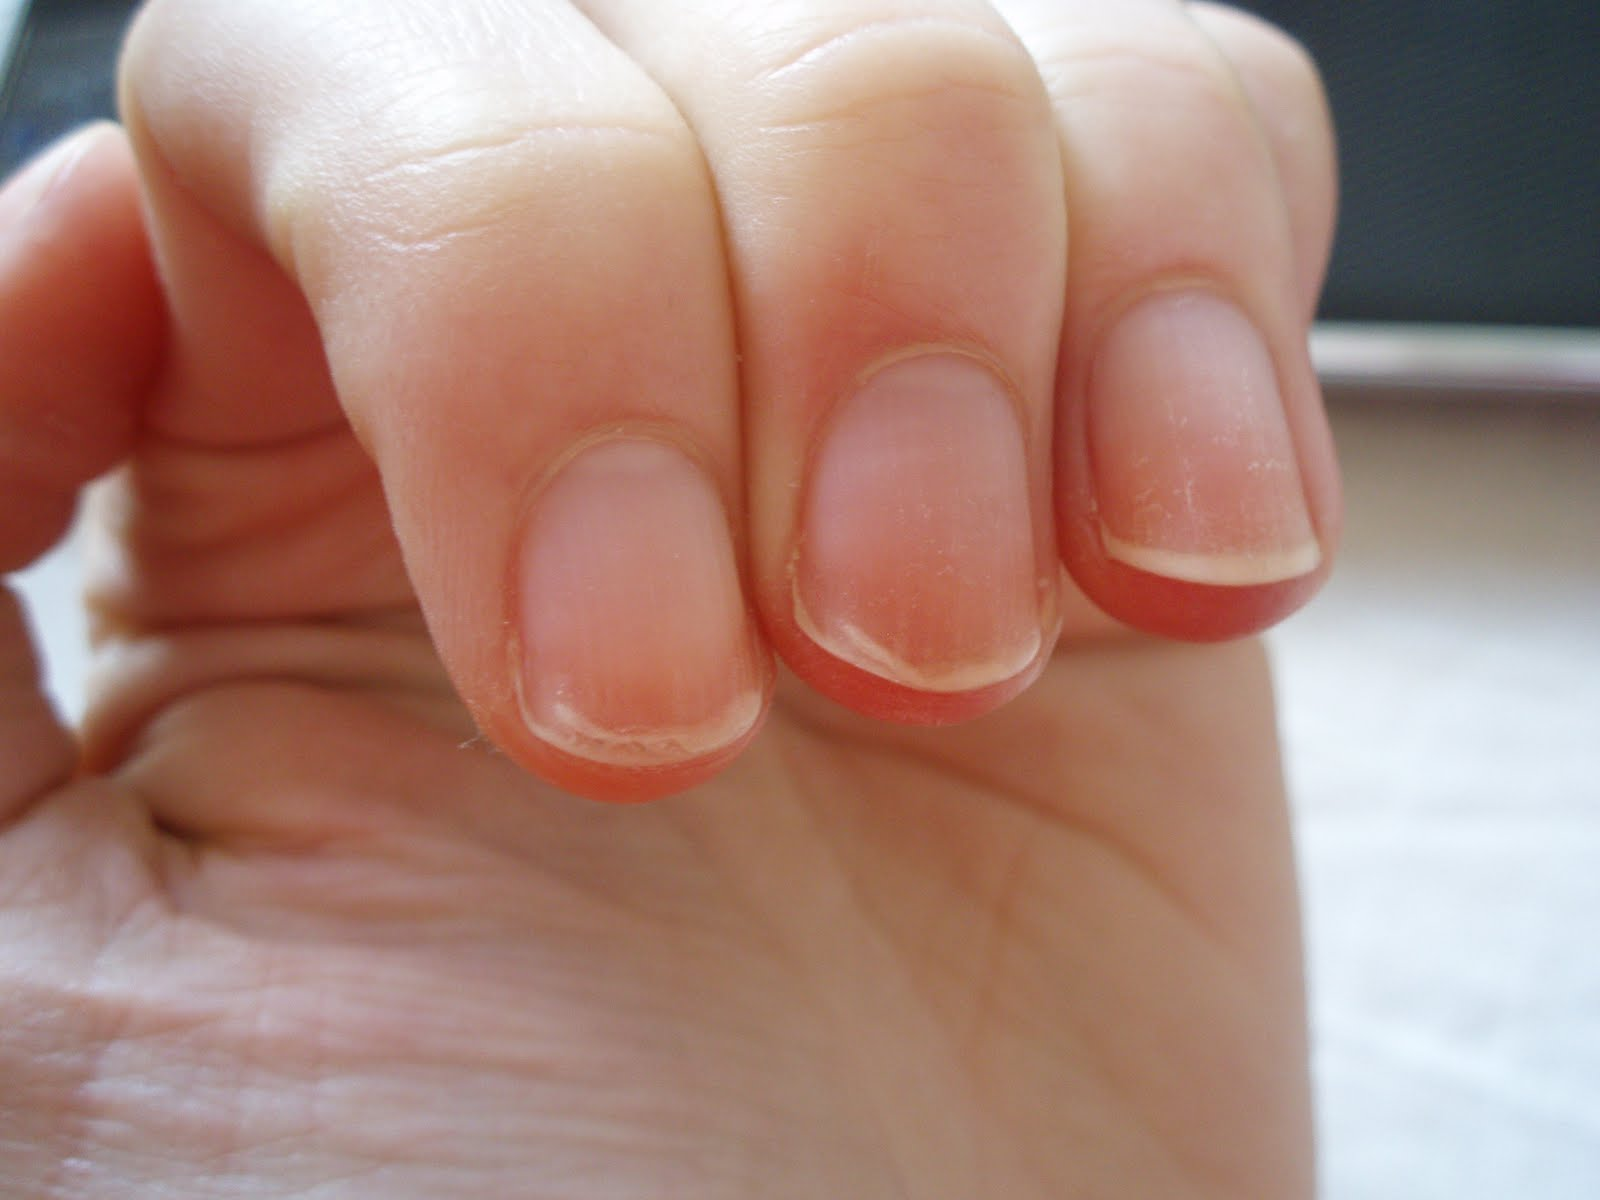 14 Things Your Nails Say About Your Health - Selfcarer